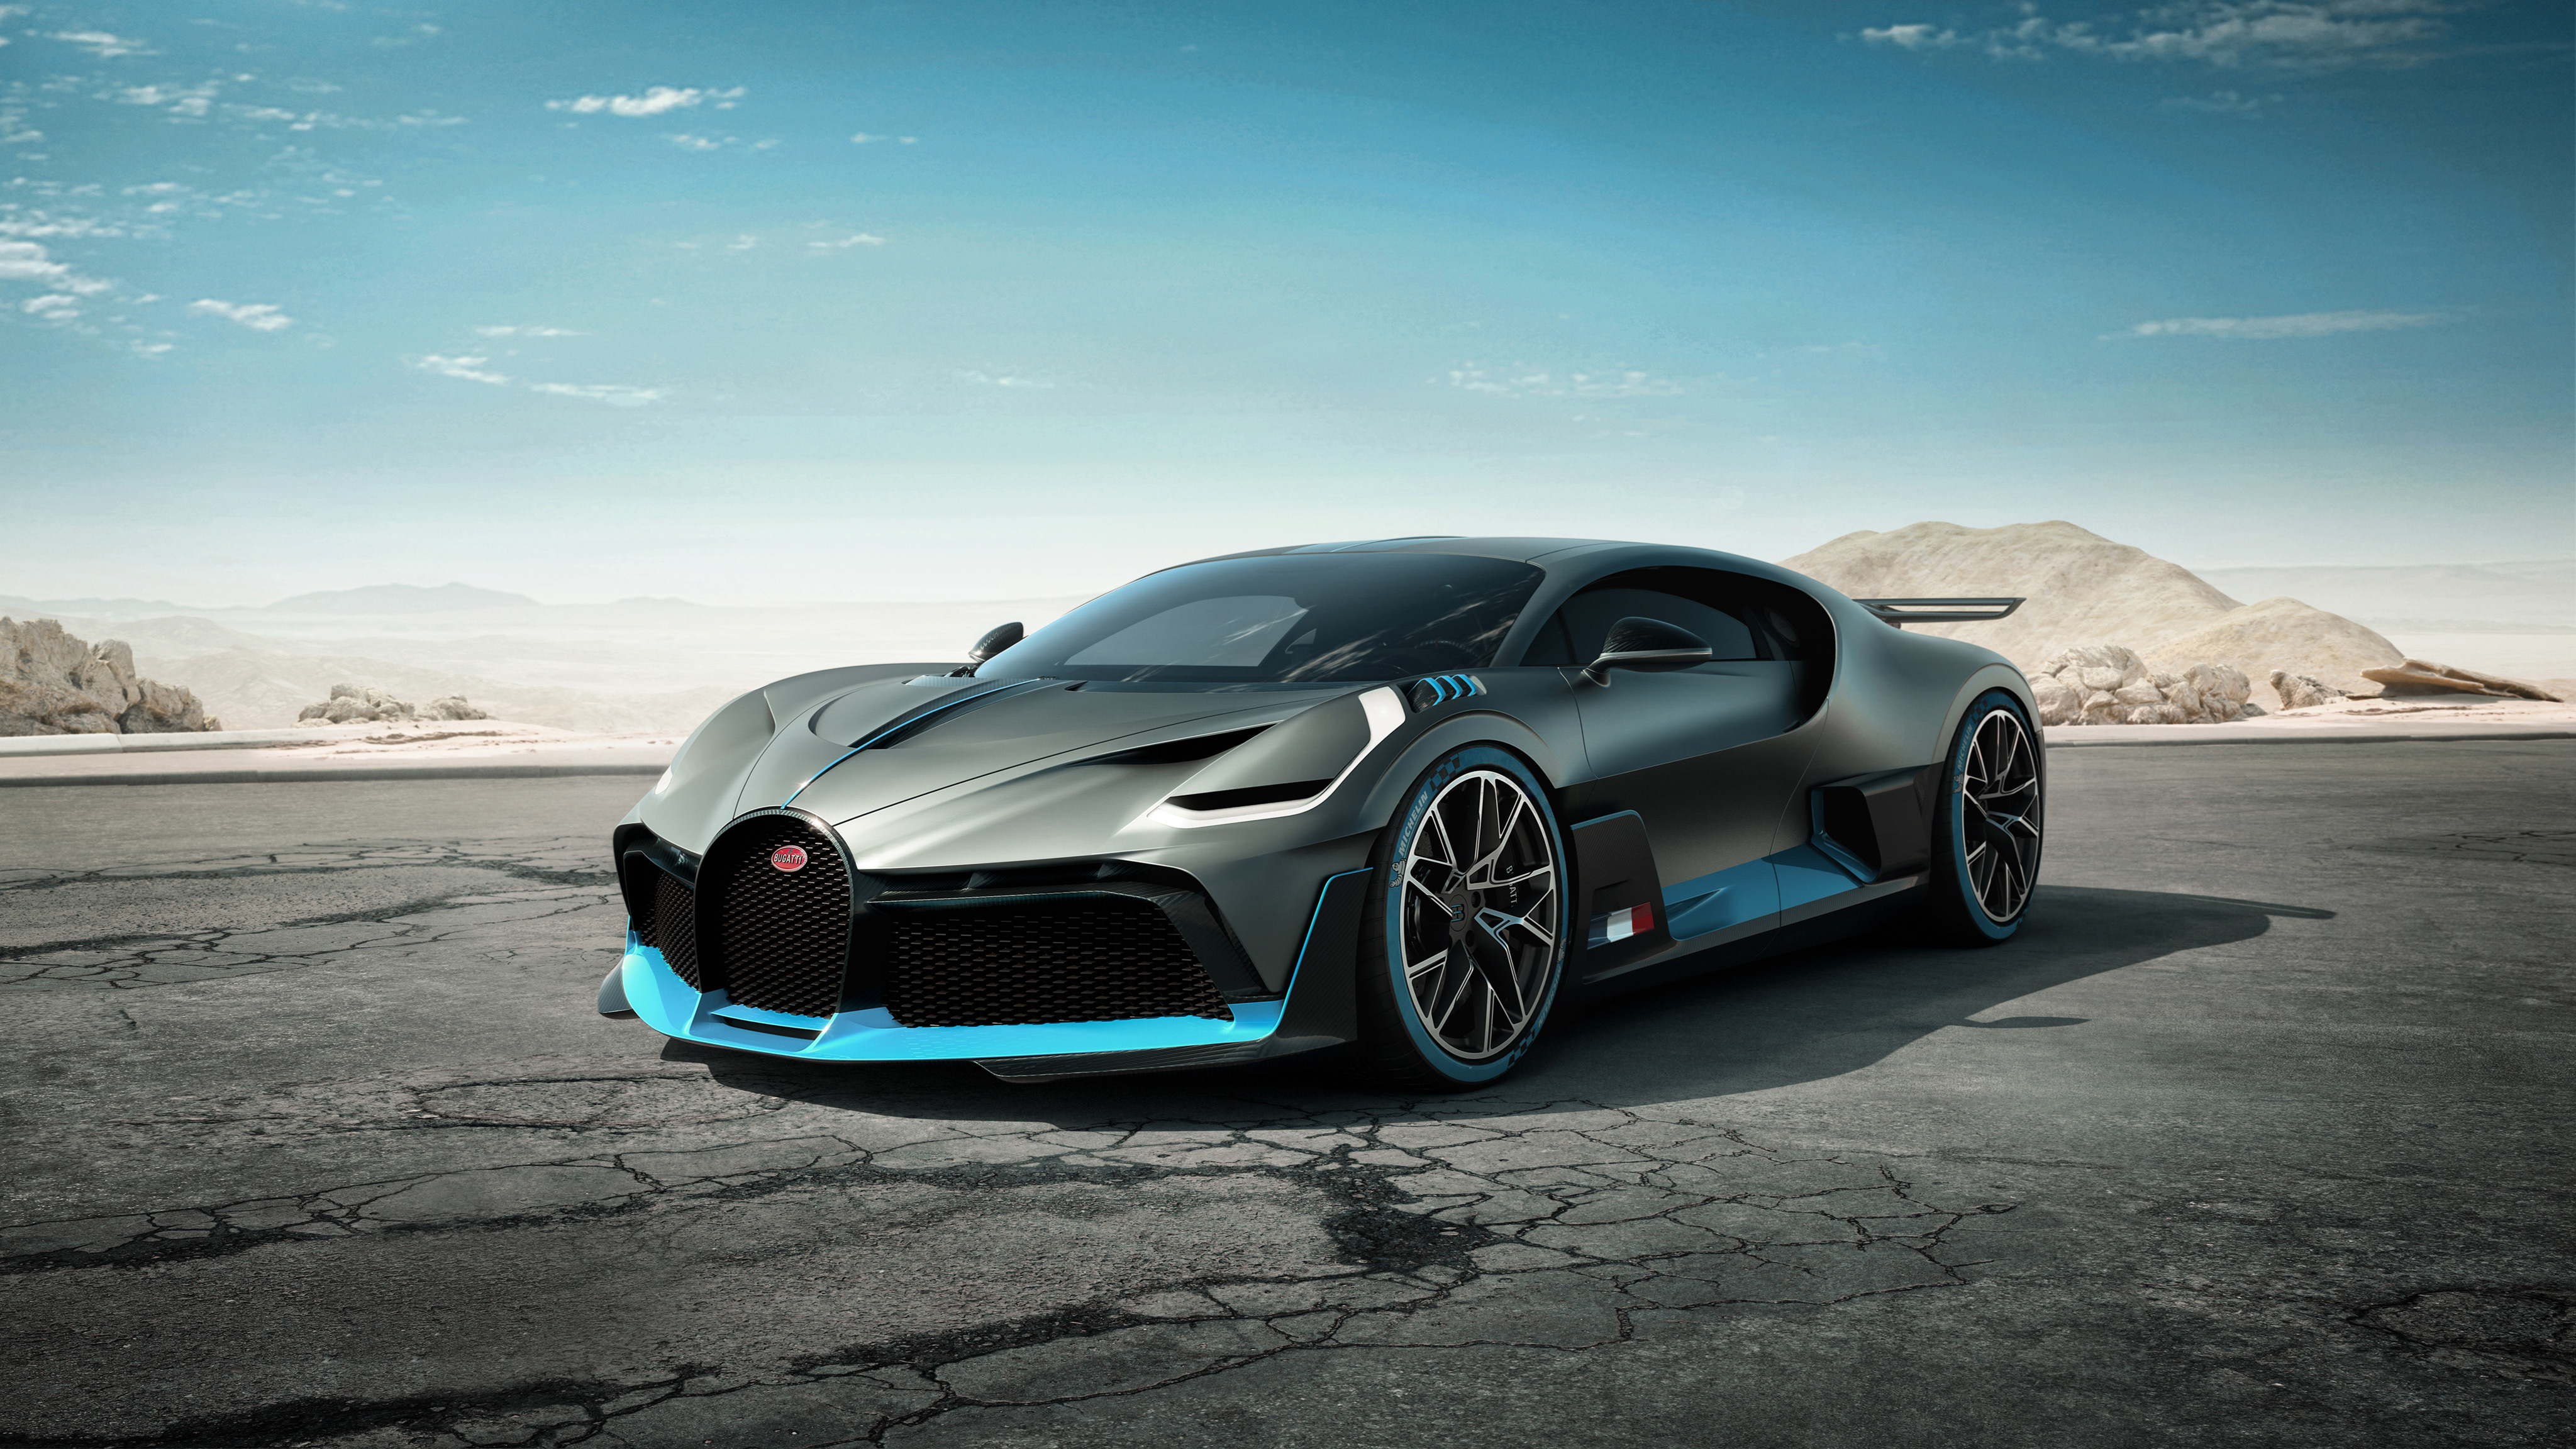 2018 Bugatti Divo Hd Cars 4k Wallpapers Images Backgrounds